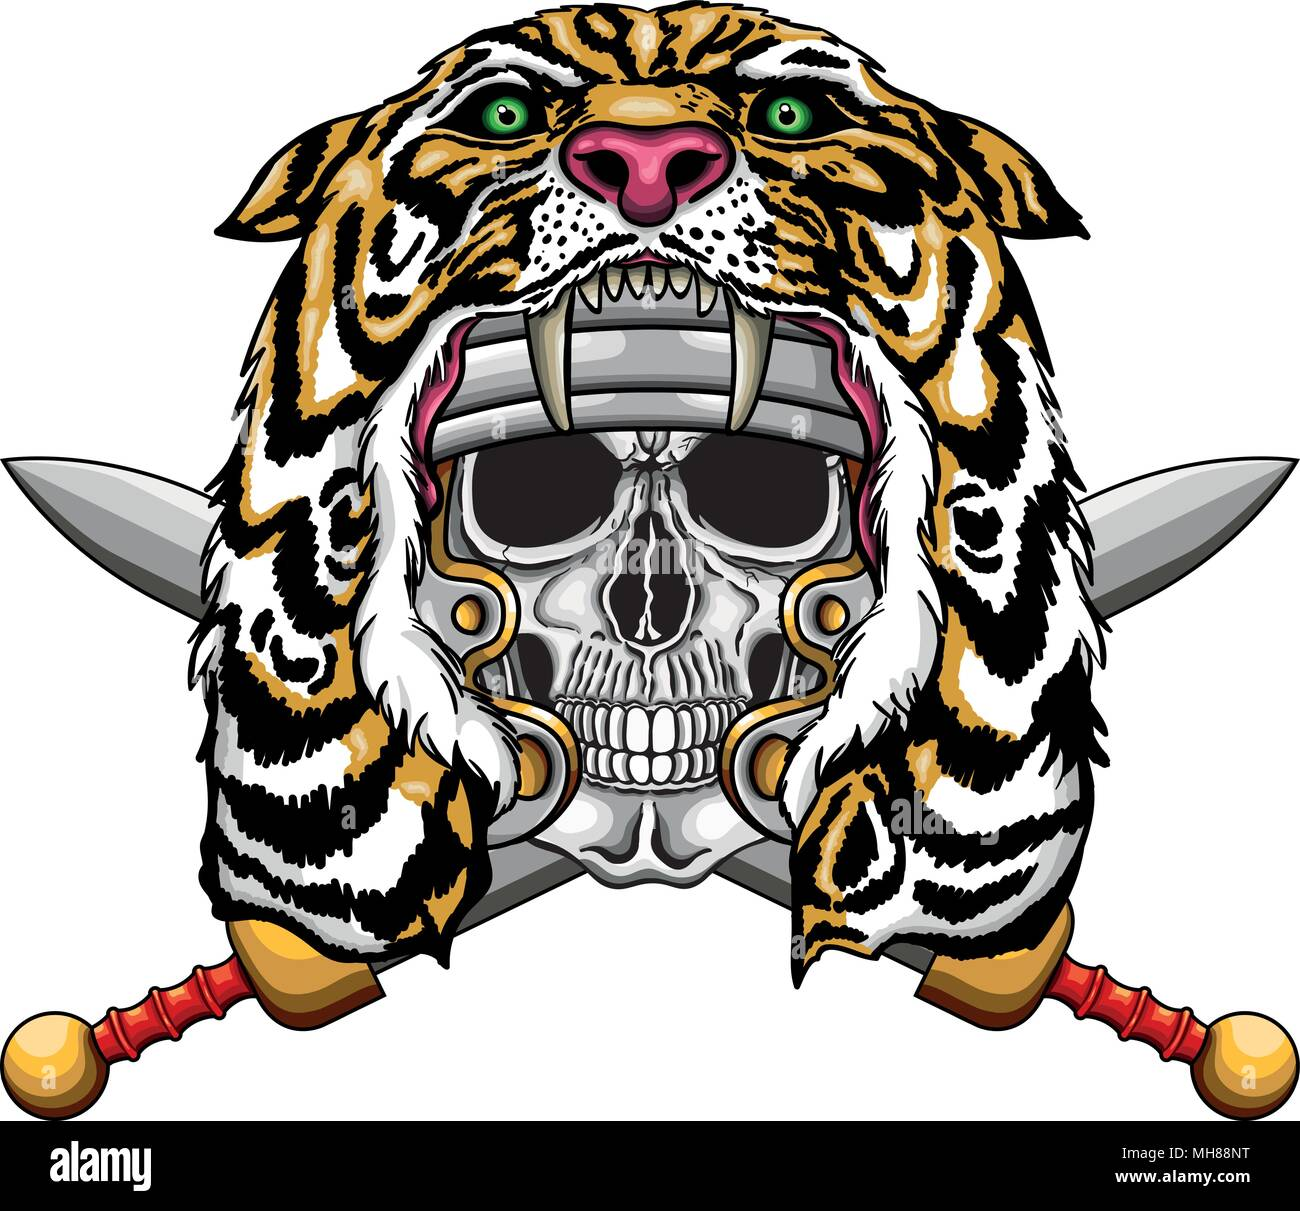 Vector illustration of roman empire soldier with lion hood. - Stock Image